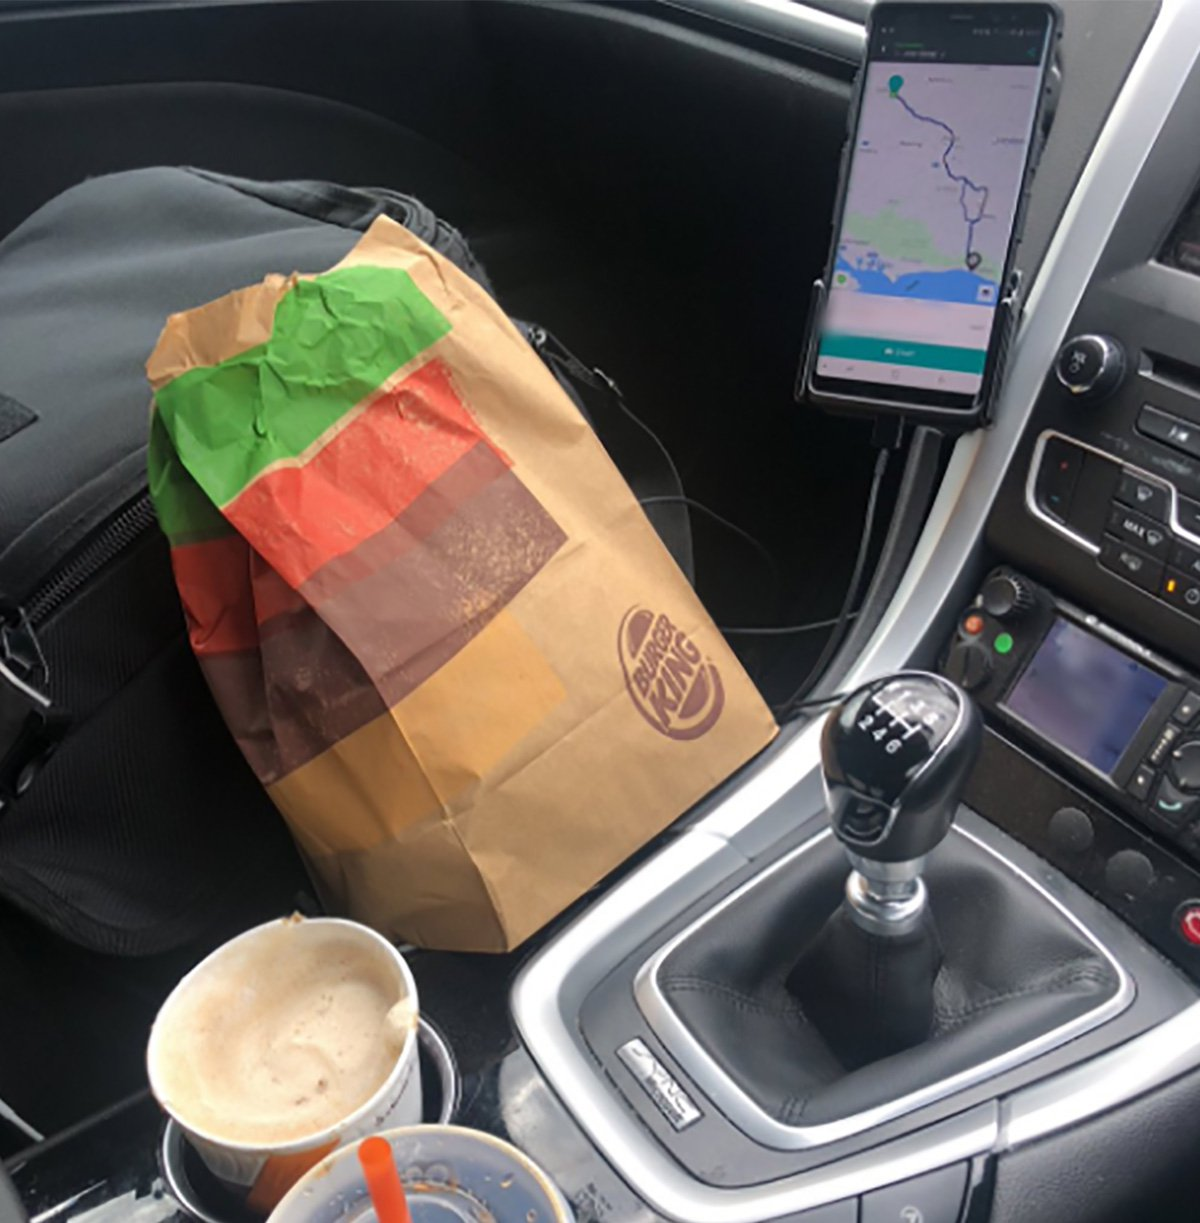 Cop shames woman criticised him for having a Burger King during tough shift